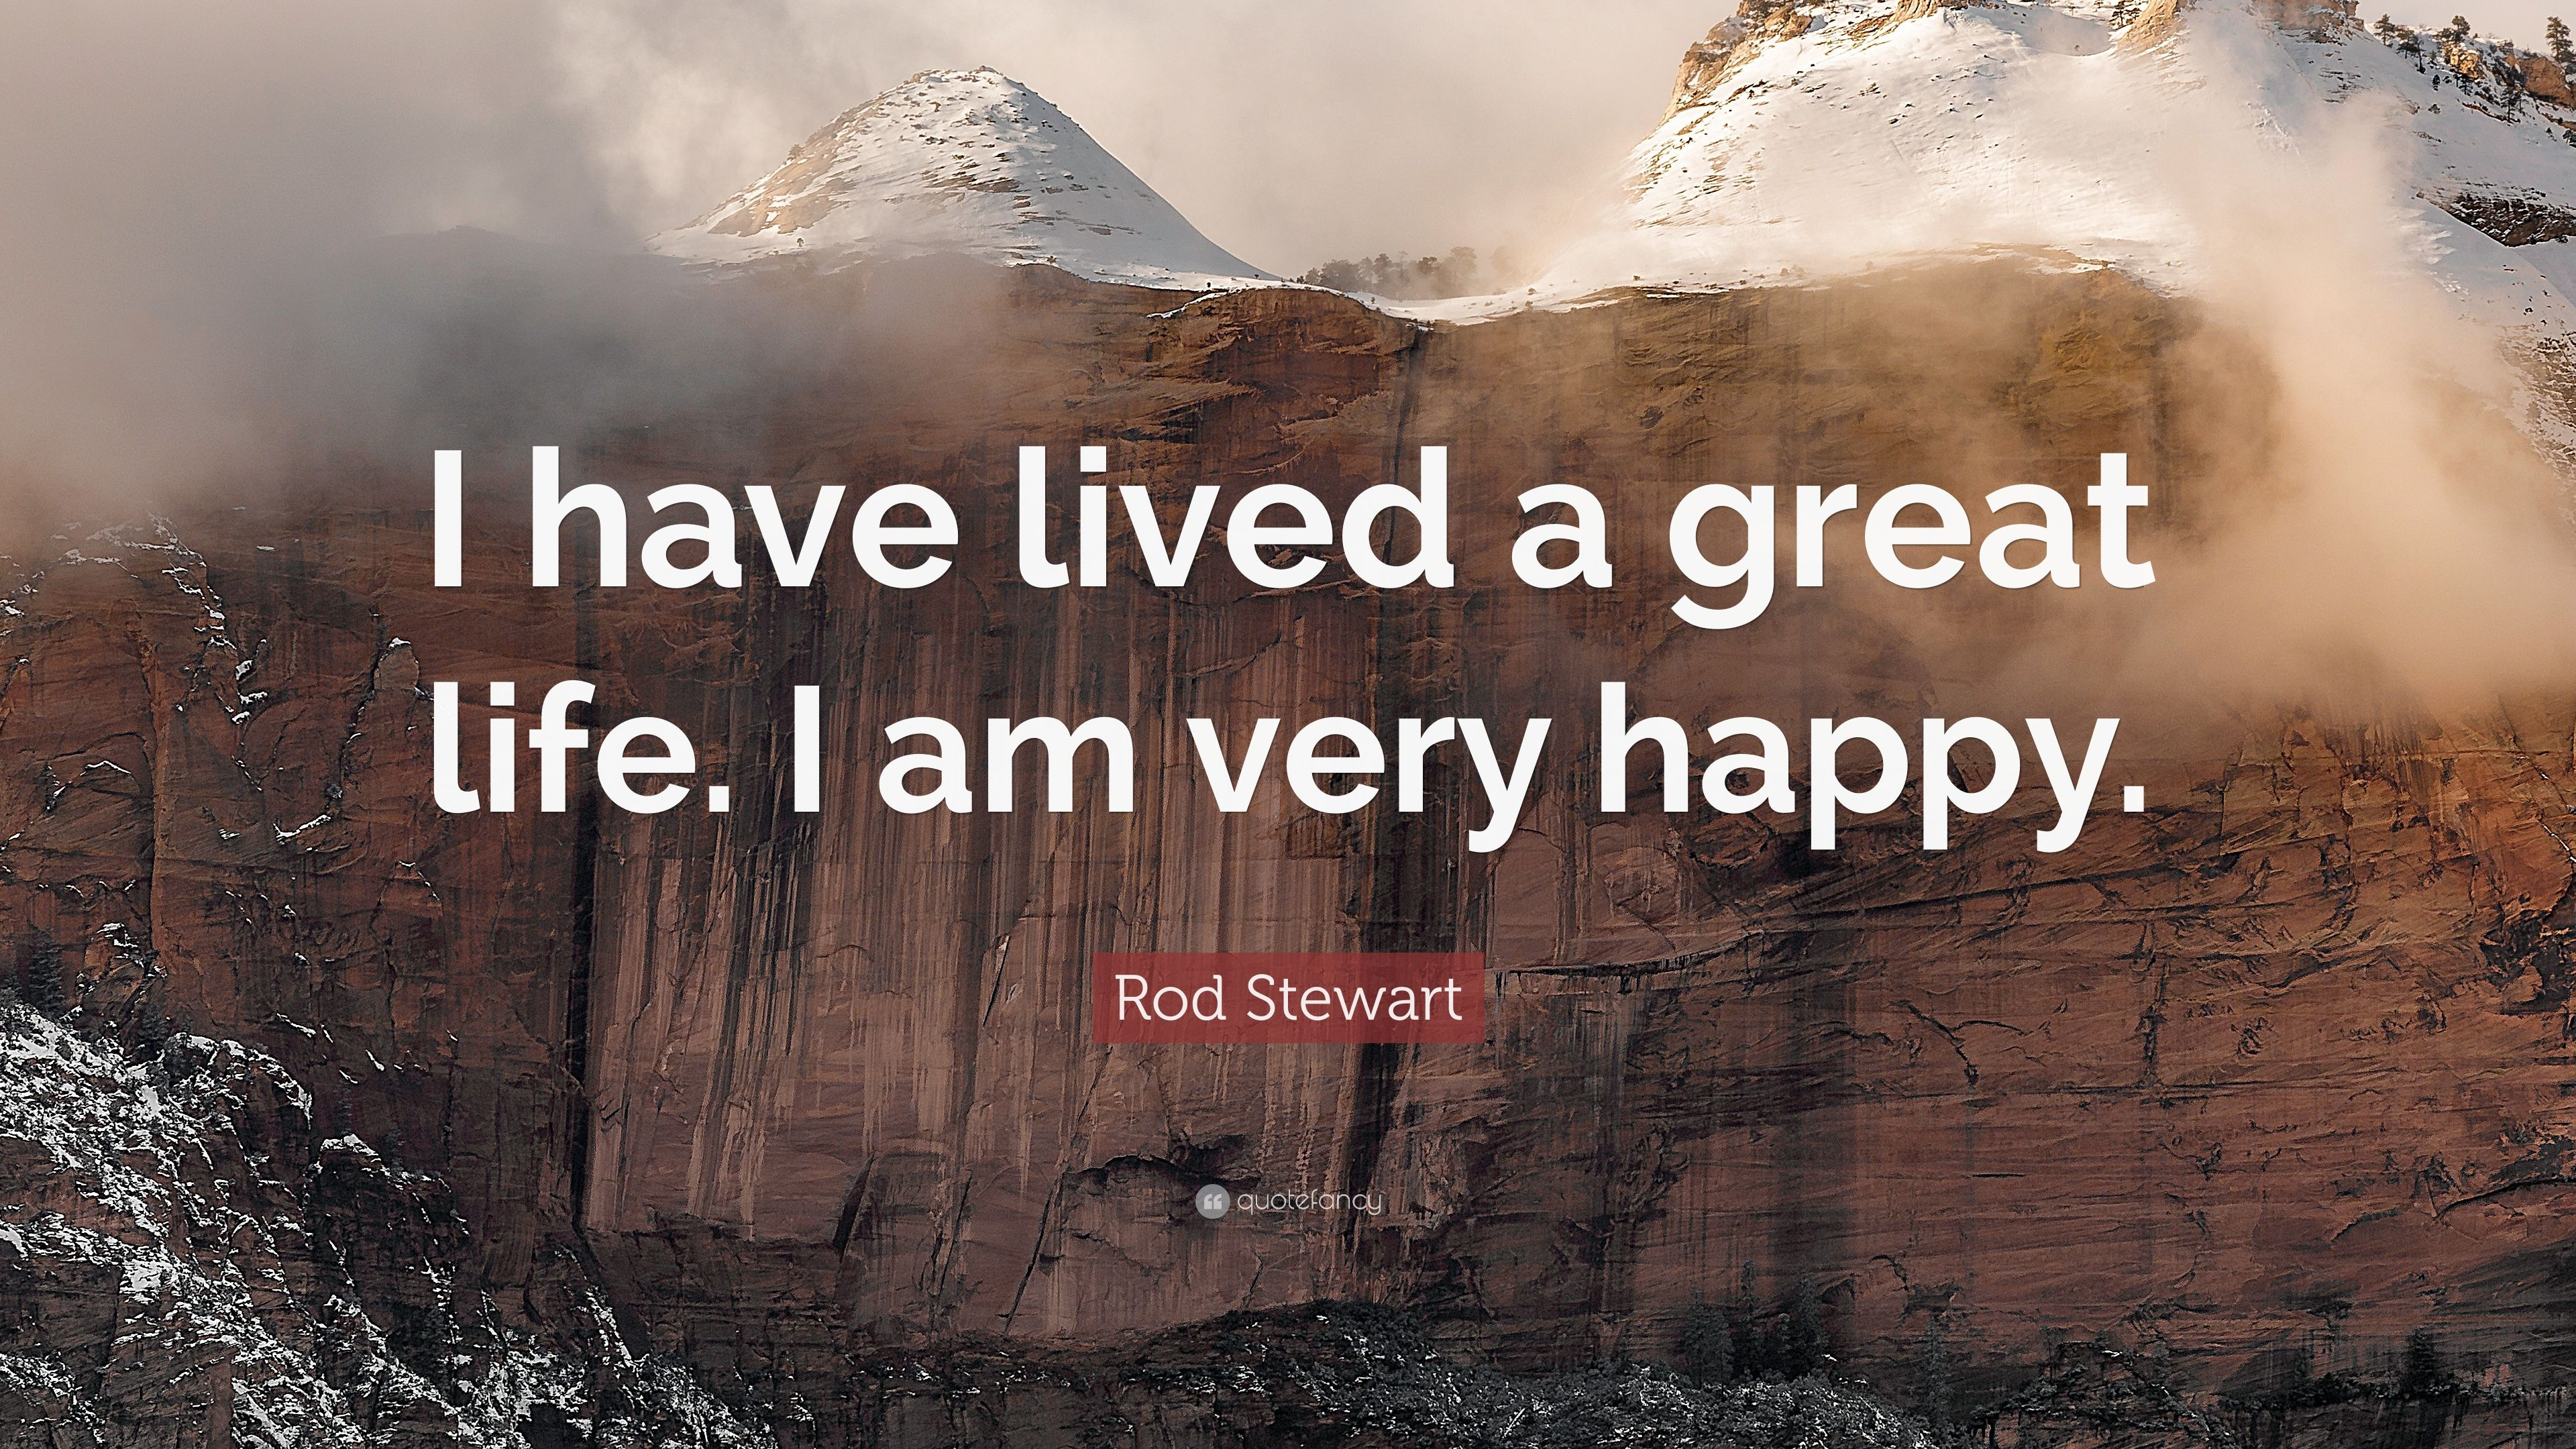 """Have A Great Life Quotes Mesmerizing Rod Stewart Quote """"I Have Lived A Great Lifei Am Very Happy"""